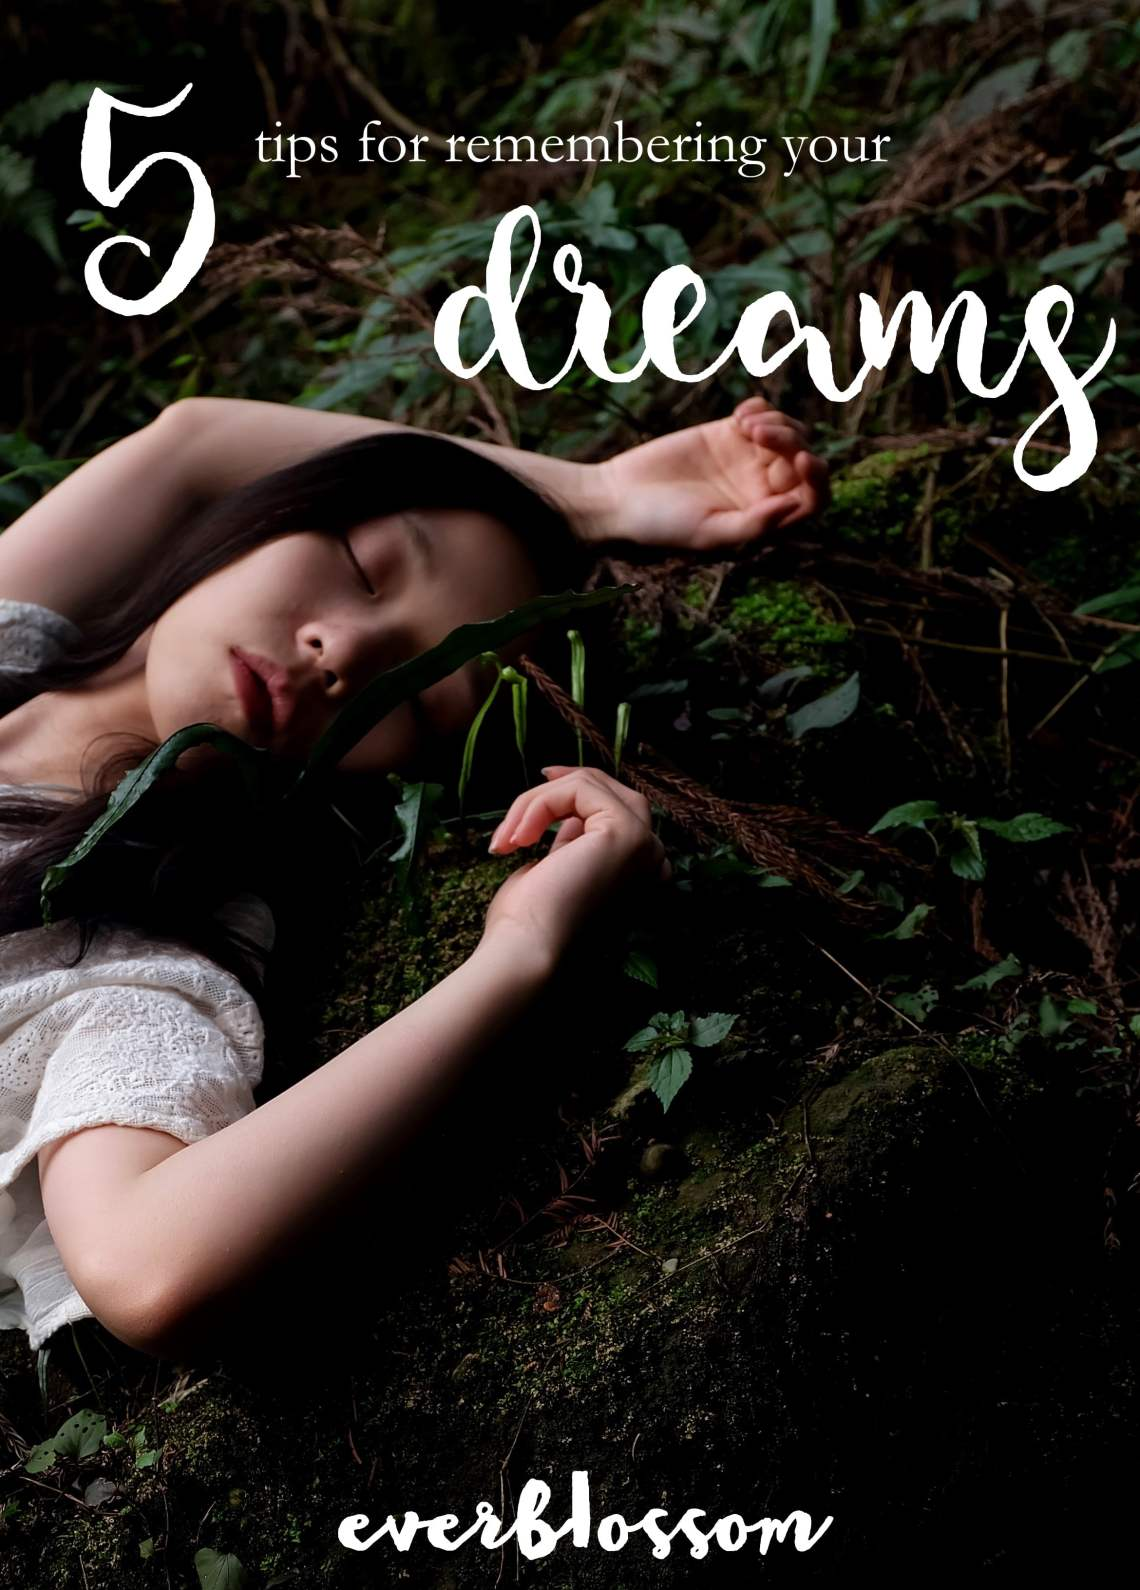 tips for remembering dreams